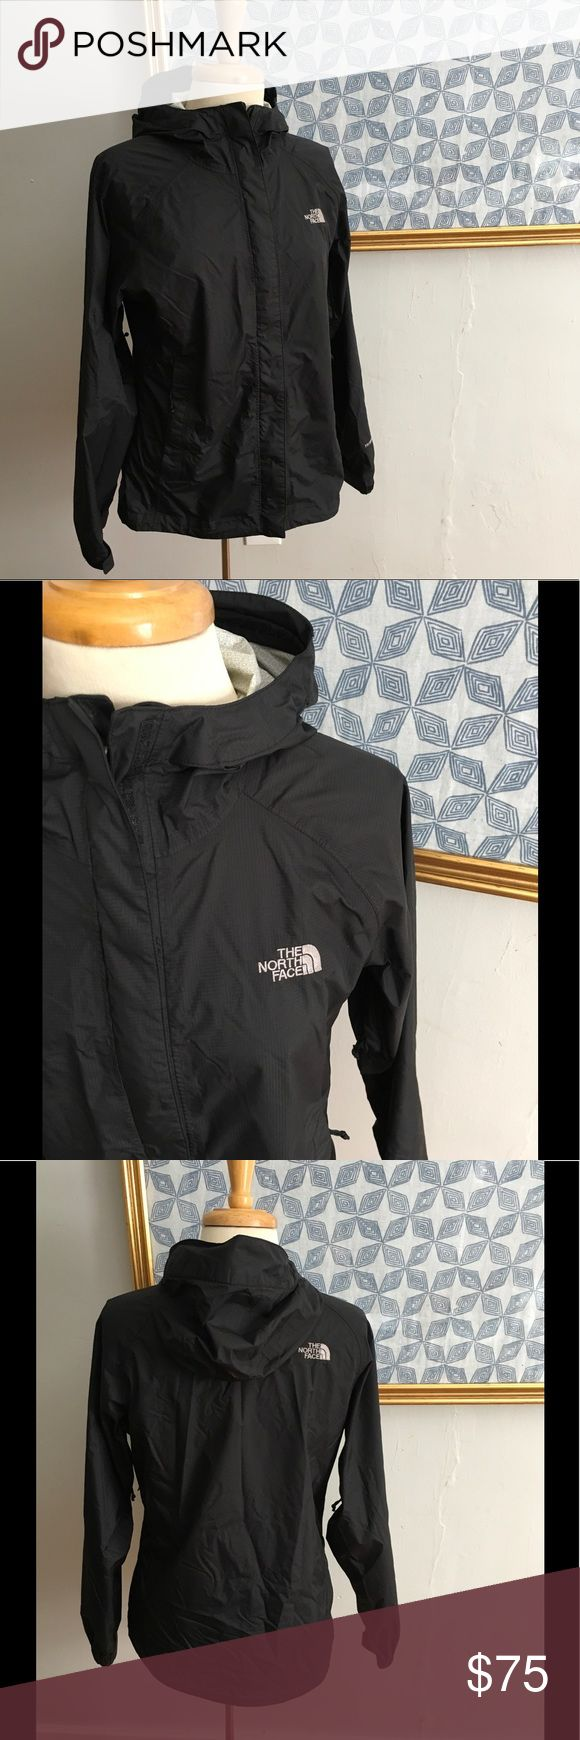 The North Face Rain Jacket HyVent 2.5L 🔥Hot Fall / Winter item In very lightly used pre loved condition. Item has not rips   Or stains to the outside. Very light discoloration to the inside not very noticeable and small pin hole size spot in the inside of the jacket. Please see the last 2 photos. All zippers are in working order. Extra size zippers for ventilation. Jacket measures approximately 19.5 across chest and is about 25.5 length. Please feel free to follow my closet. New items every…